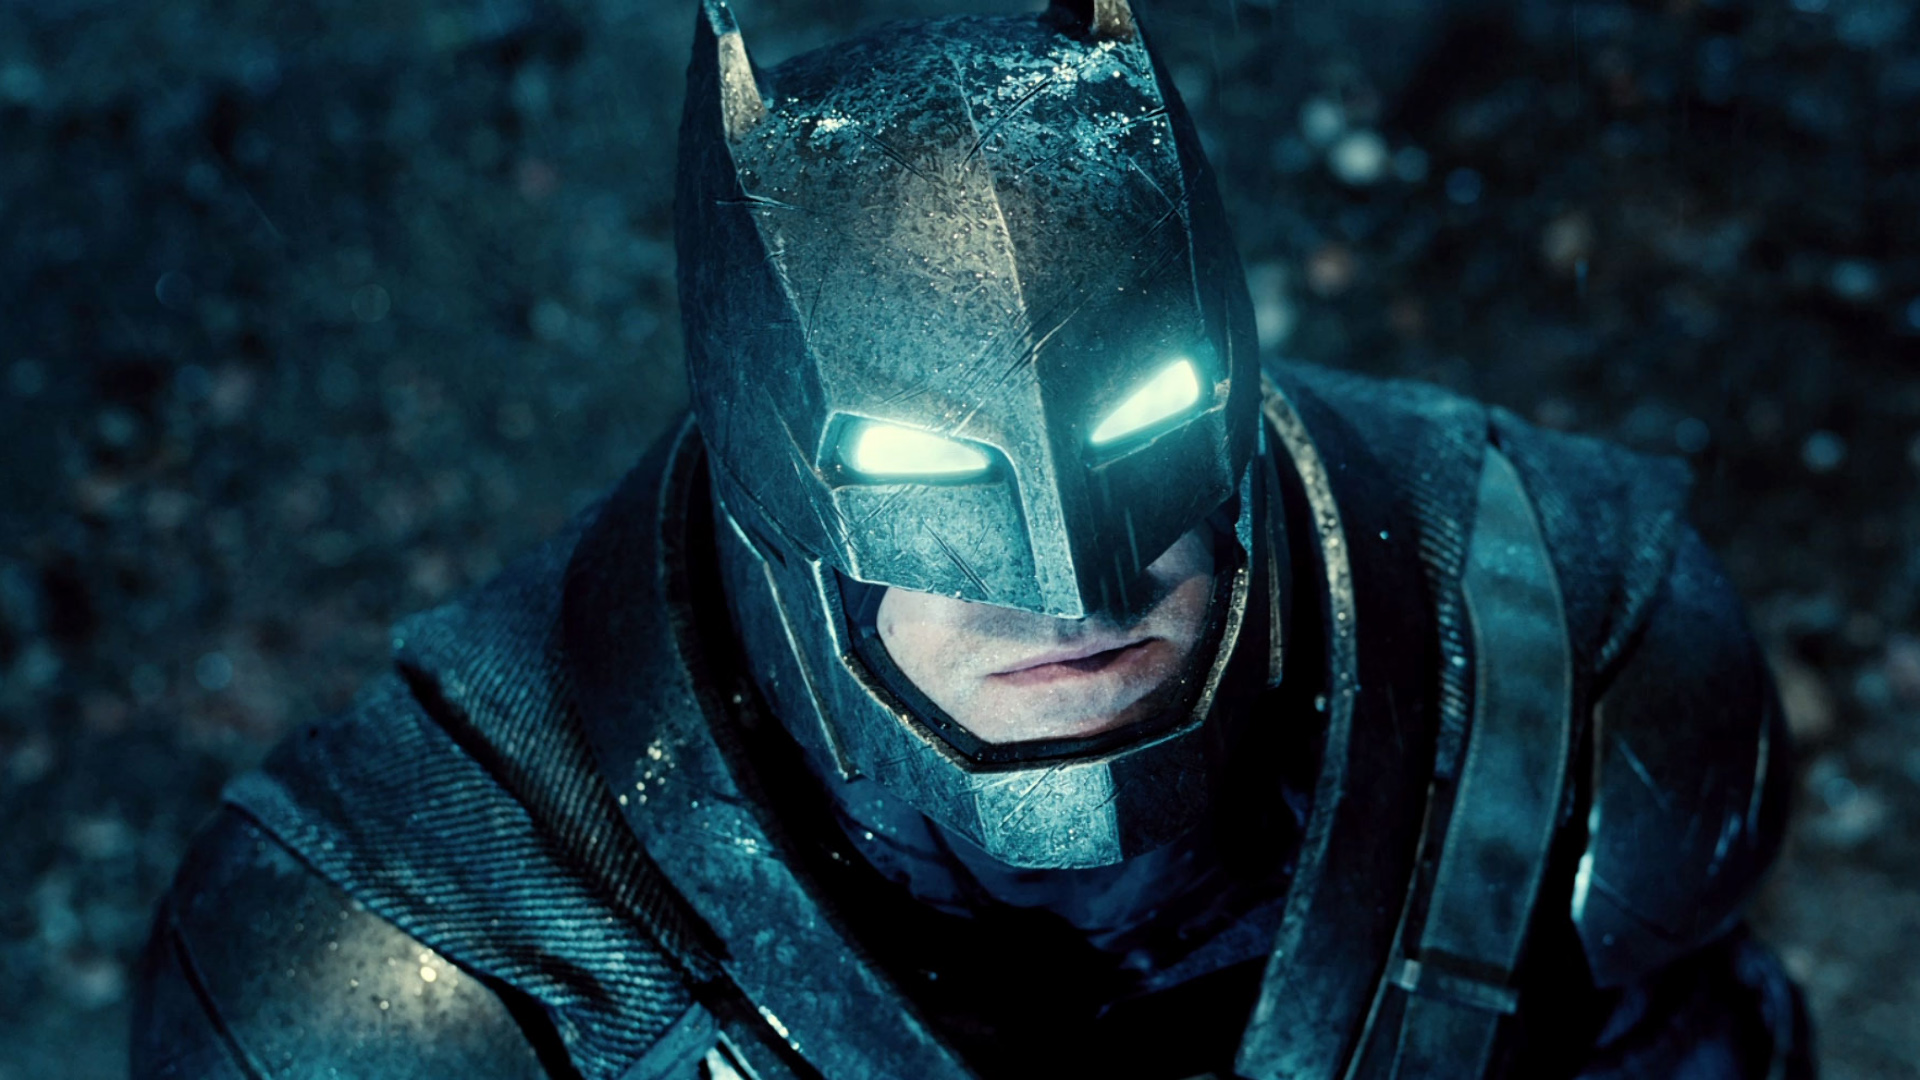 Batman Metal Armour in Batman v Superman Dawn of Justice Wallpaper 1920x1080